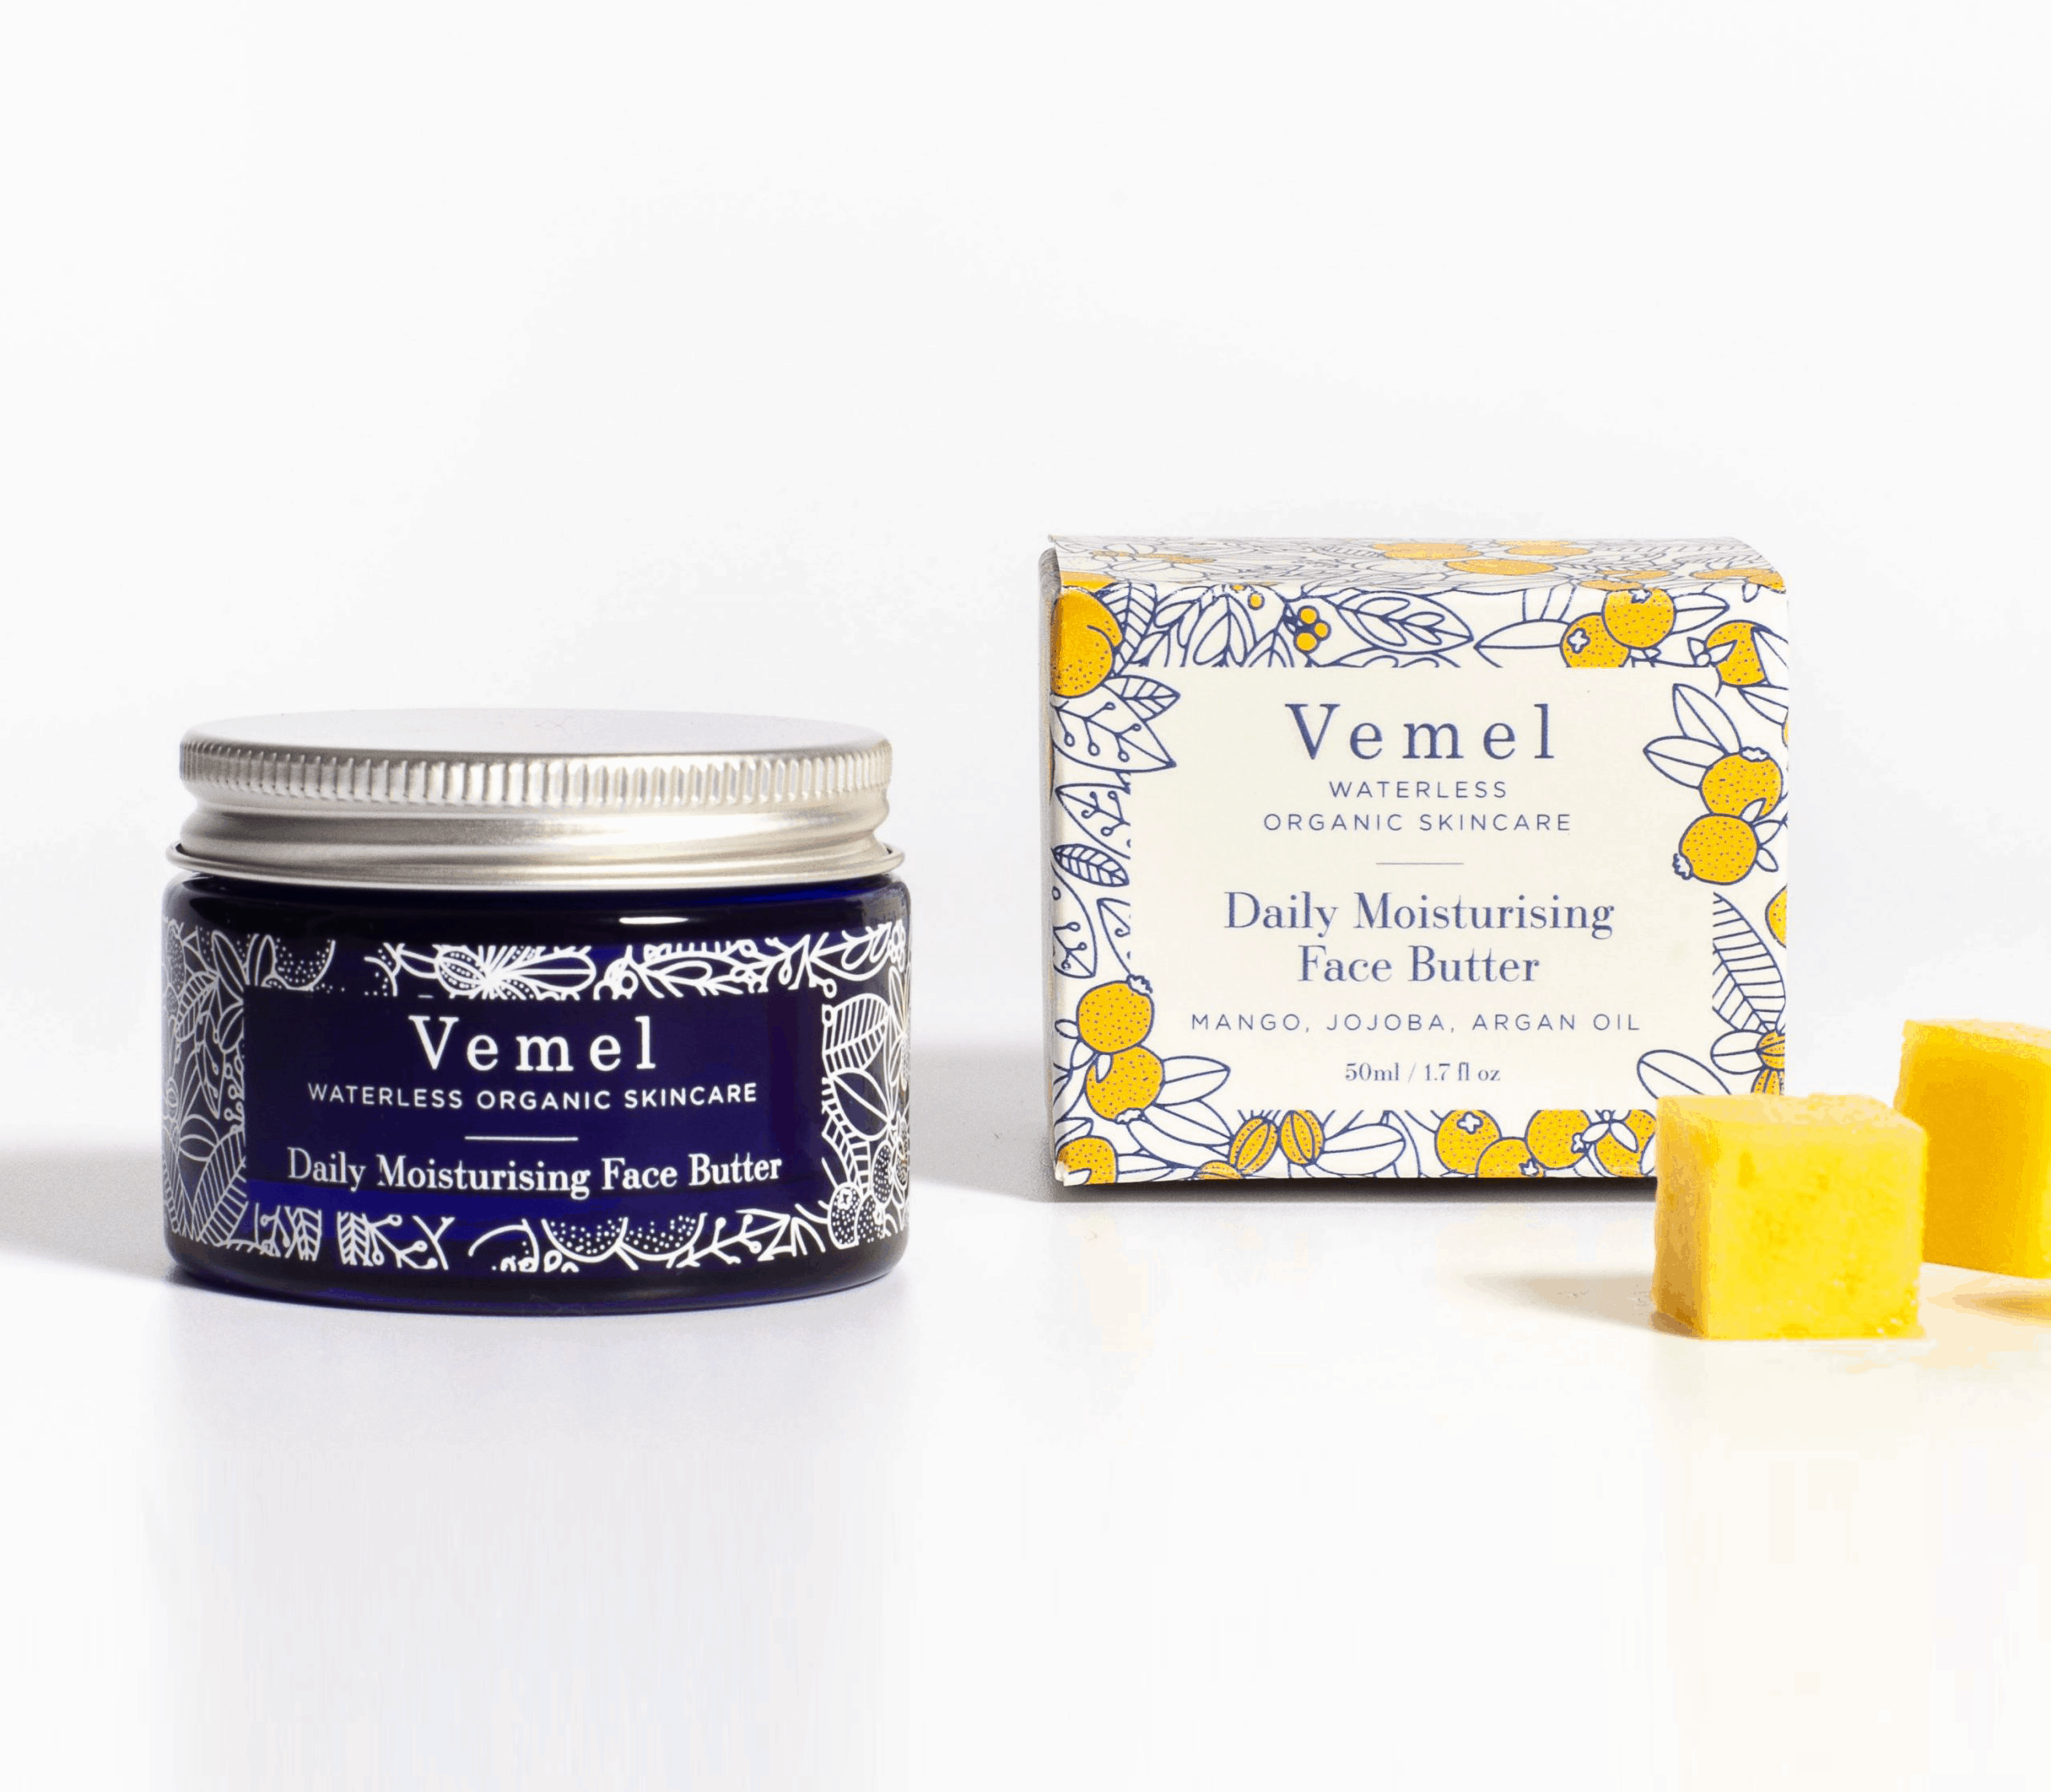 Daily Moisturising Face Butter from Waterless Natural Skincare